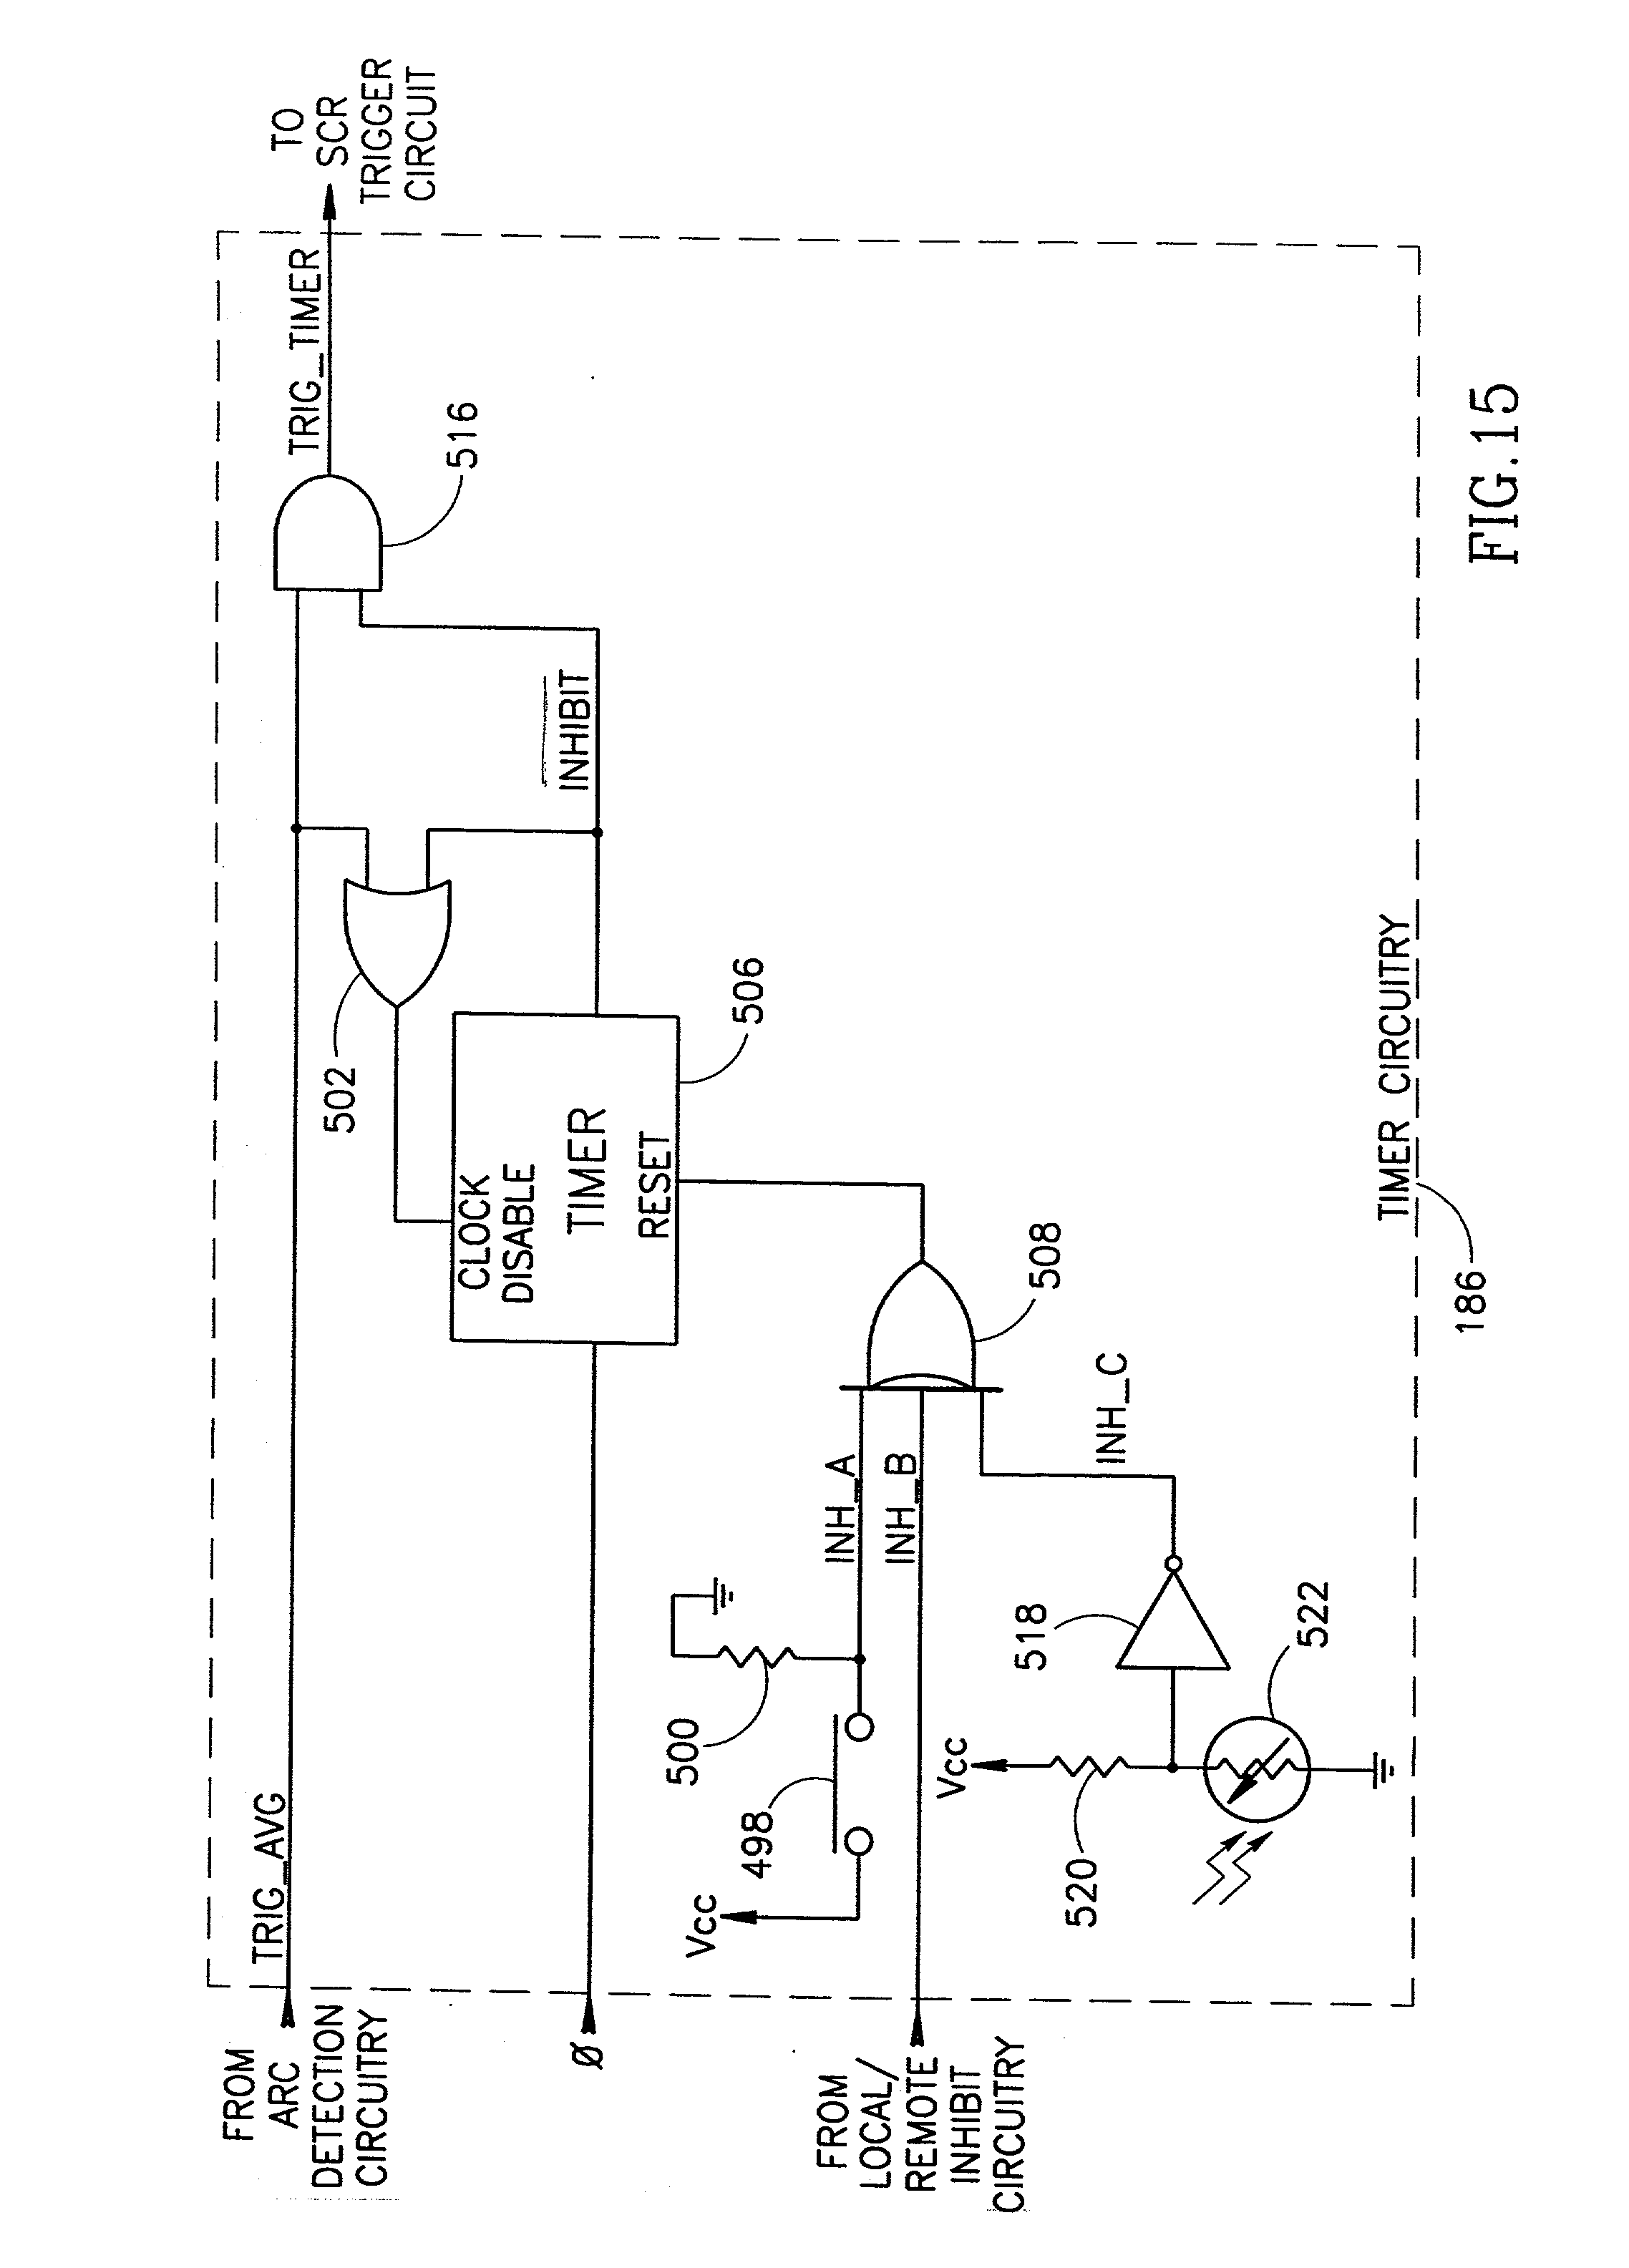 Arc Fault Circuit Interrupter Tripping Guide And Troubleshooting Ground Interupter Patent Us20020149891 Detector With Nuisance Outlet